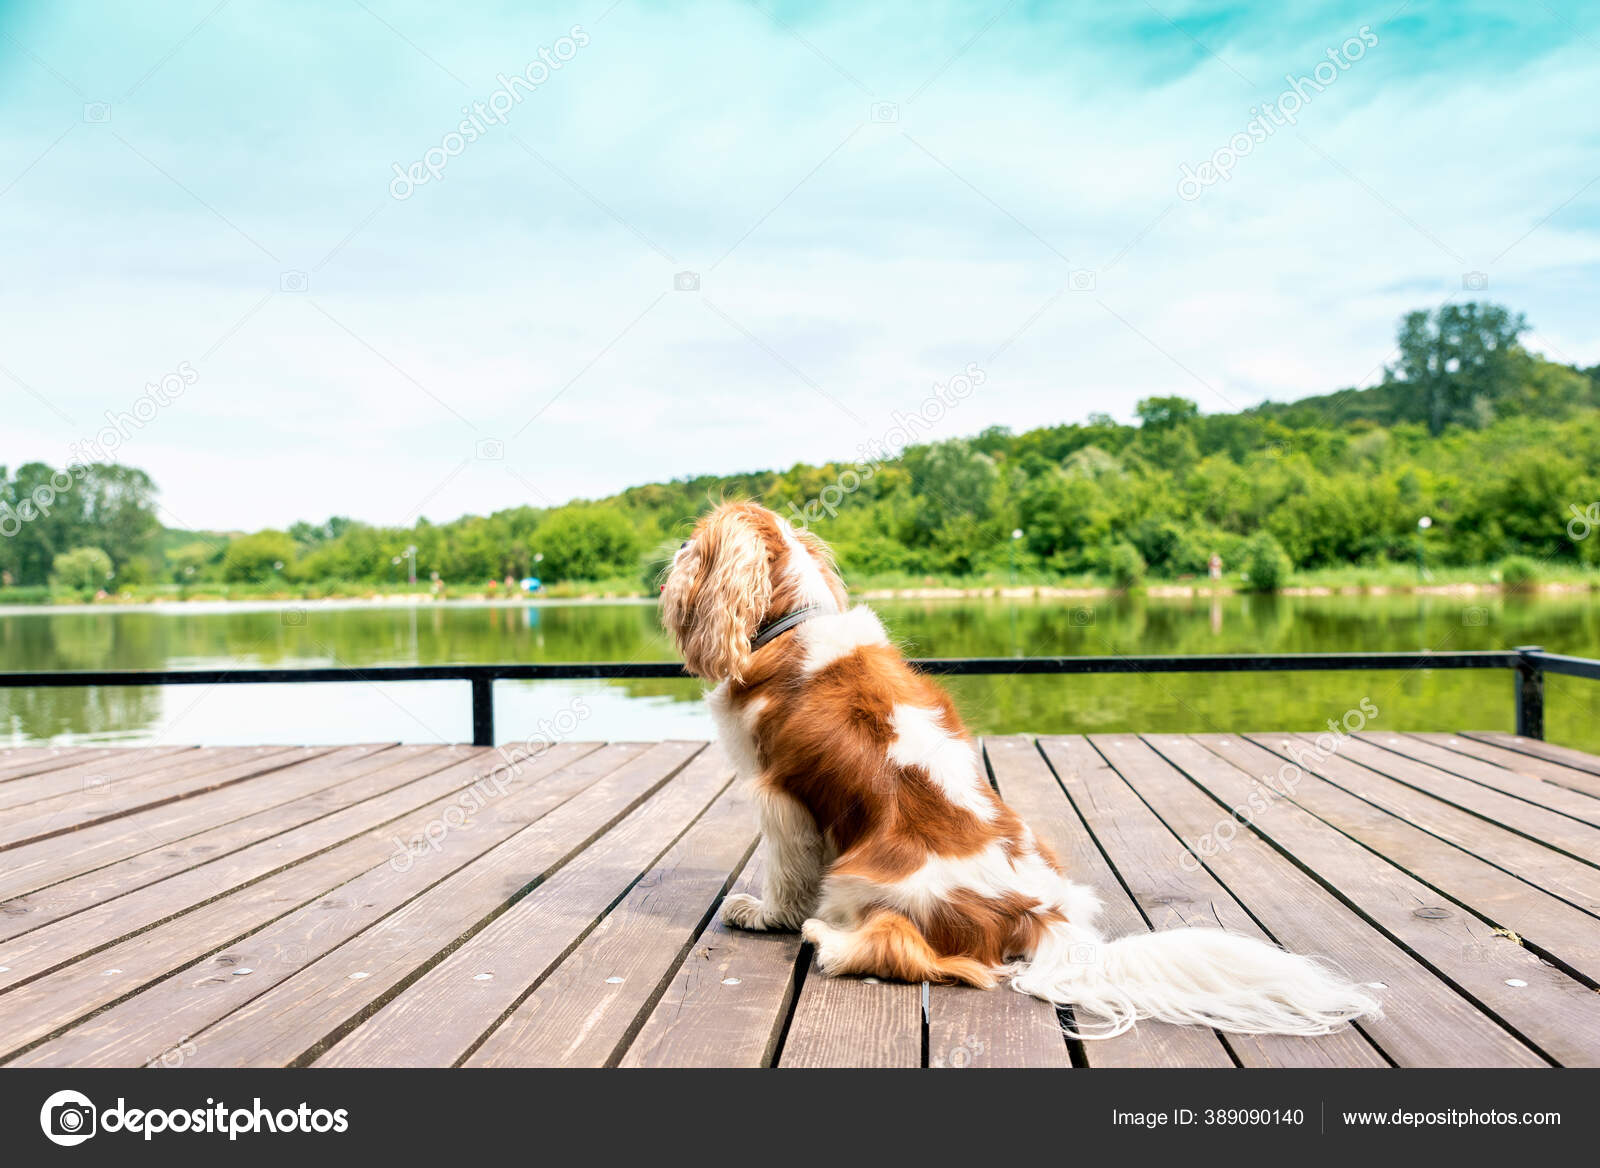 Full Length Shot Cute Cavalier King Charles Spaniel Puppy Sitting Stock Photo C Sepy 389090140